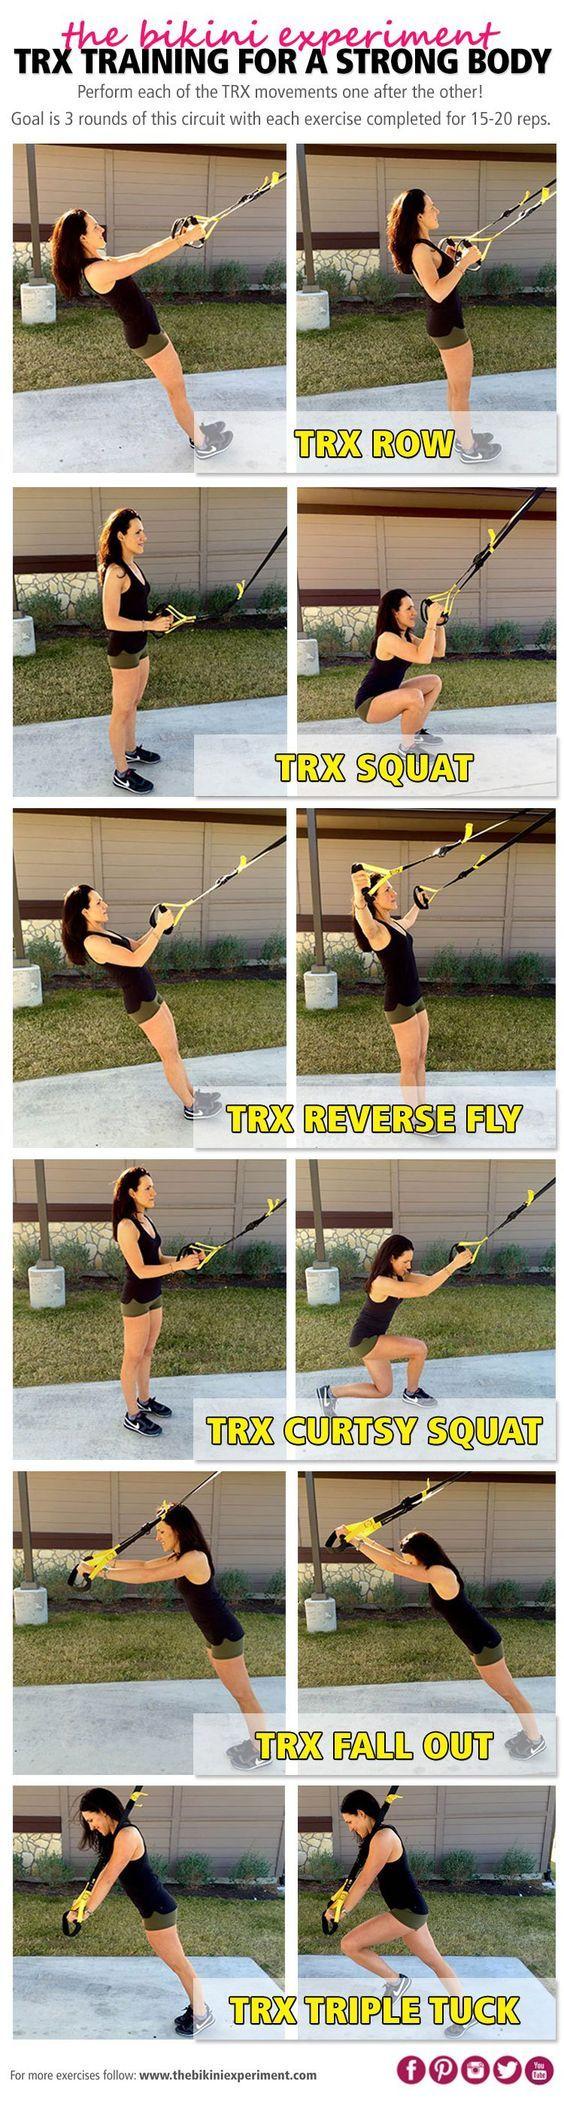 LIHAO Schlingentrainer Suspensiontrainer Functional Training Fitness Gelb/Schwarz - TRX Workouts -  https://www.amazon.de/dp/B00RLH0M6C